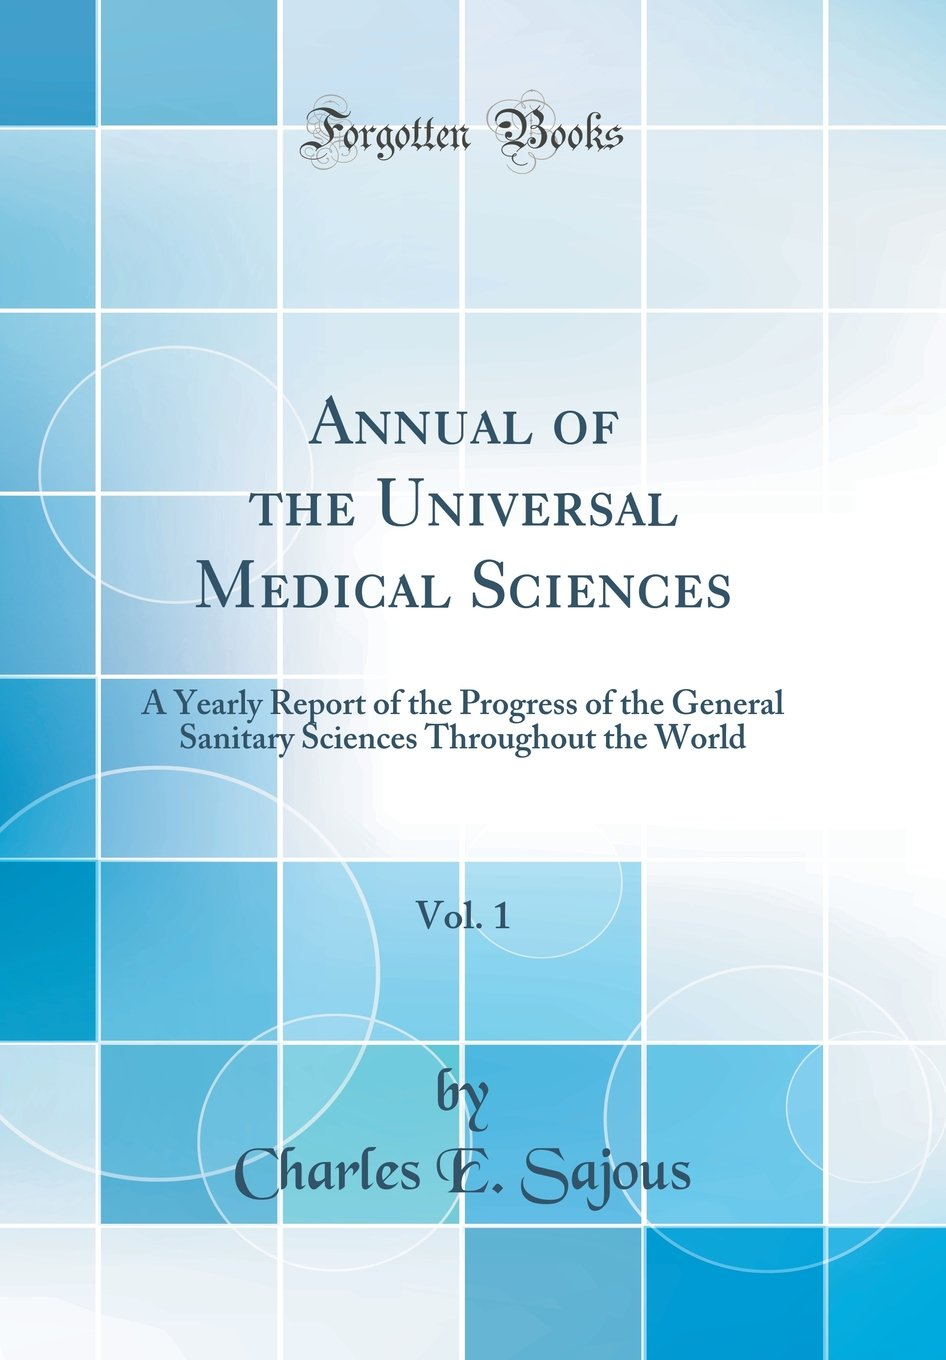 Download Annual of the Universal Medical Sciences, Vol. 1: A Yearly Report of the Progress of the General Sanitary Sciences Throughout the World (Classic Reprint) ebook